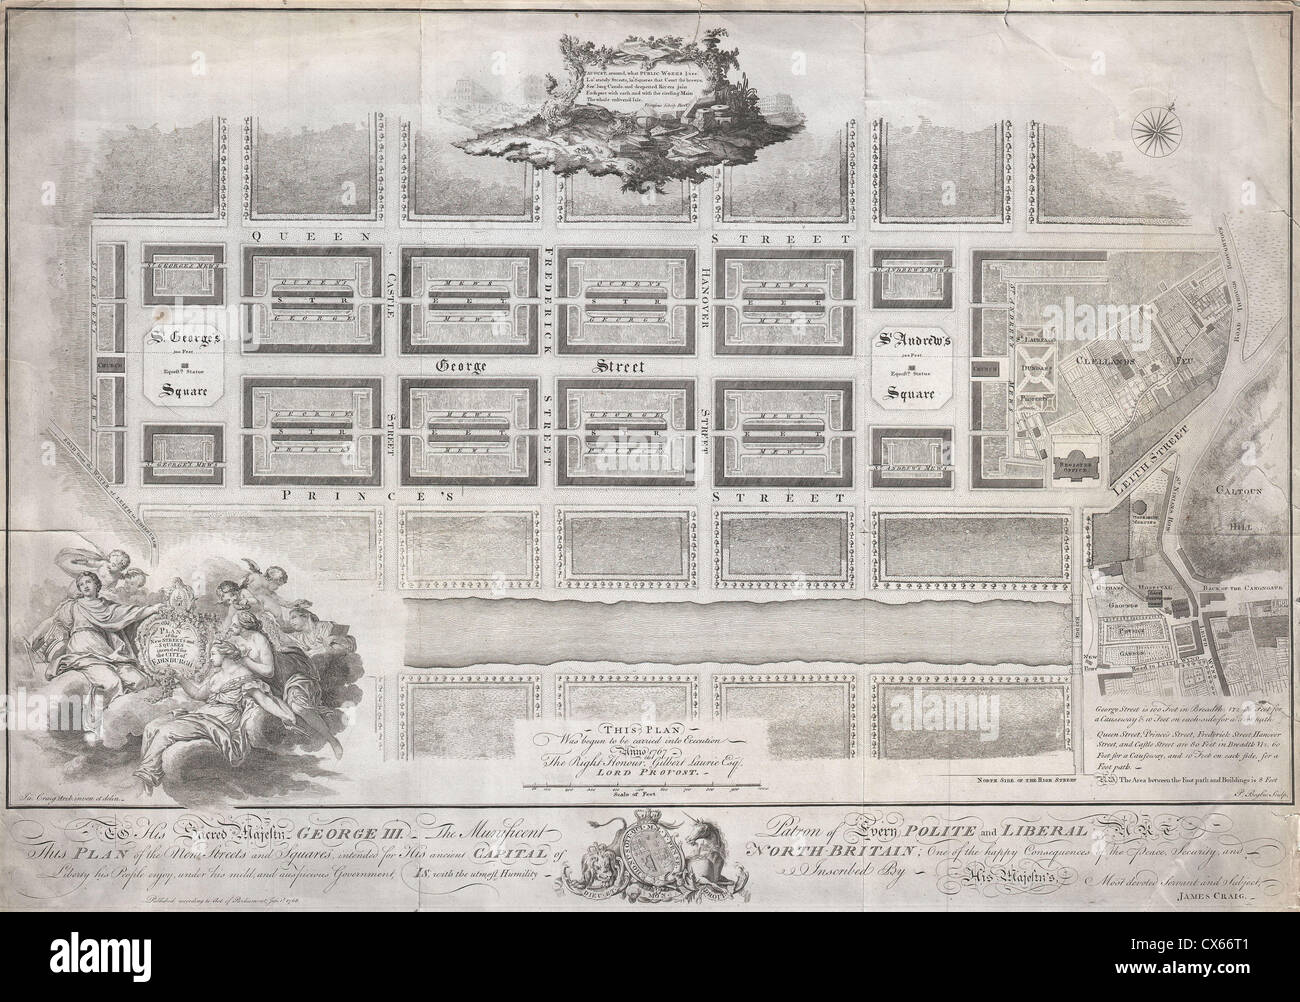 1768 James Craig Map of New Town, Edinburgh, Scotland (First Plan of New Town) - Stock Image